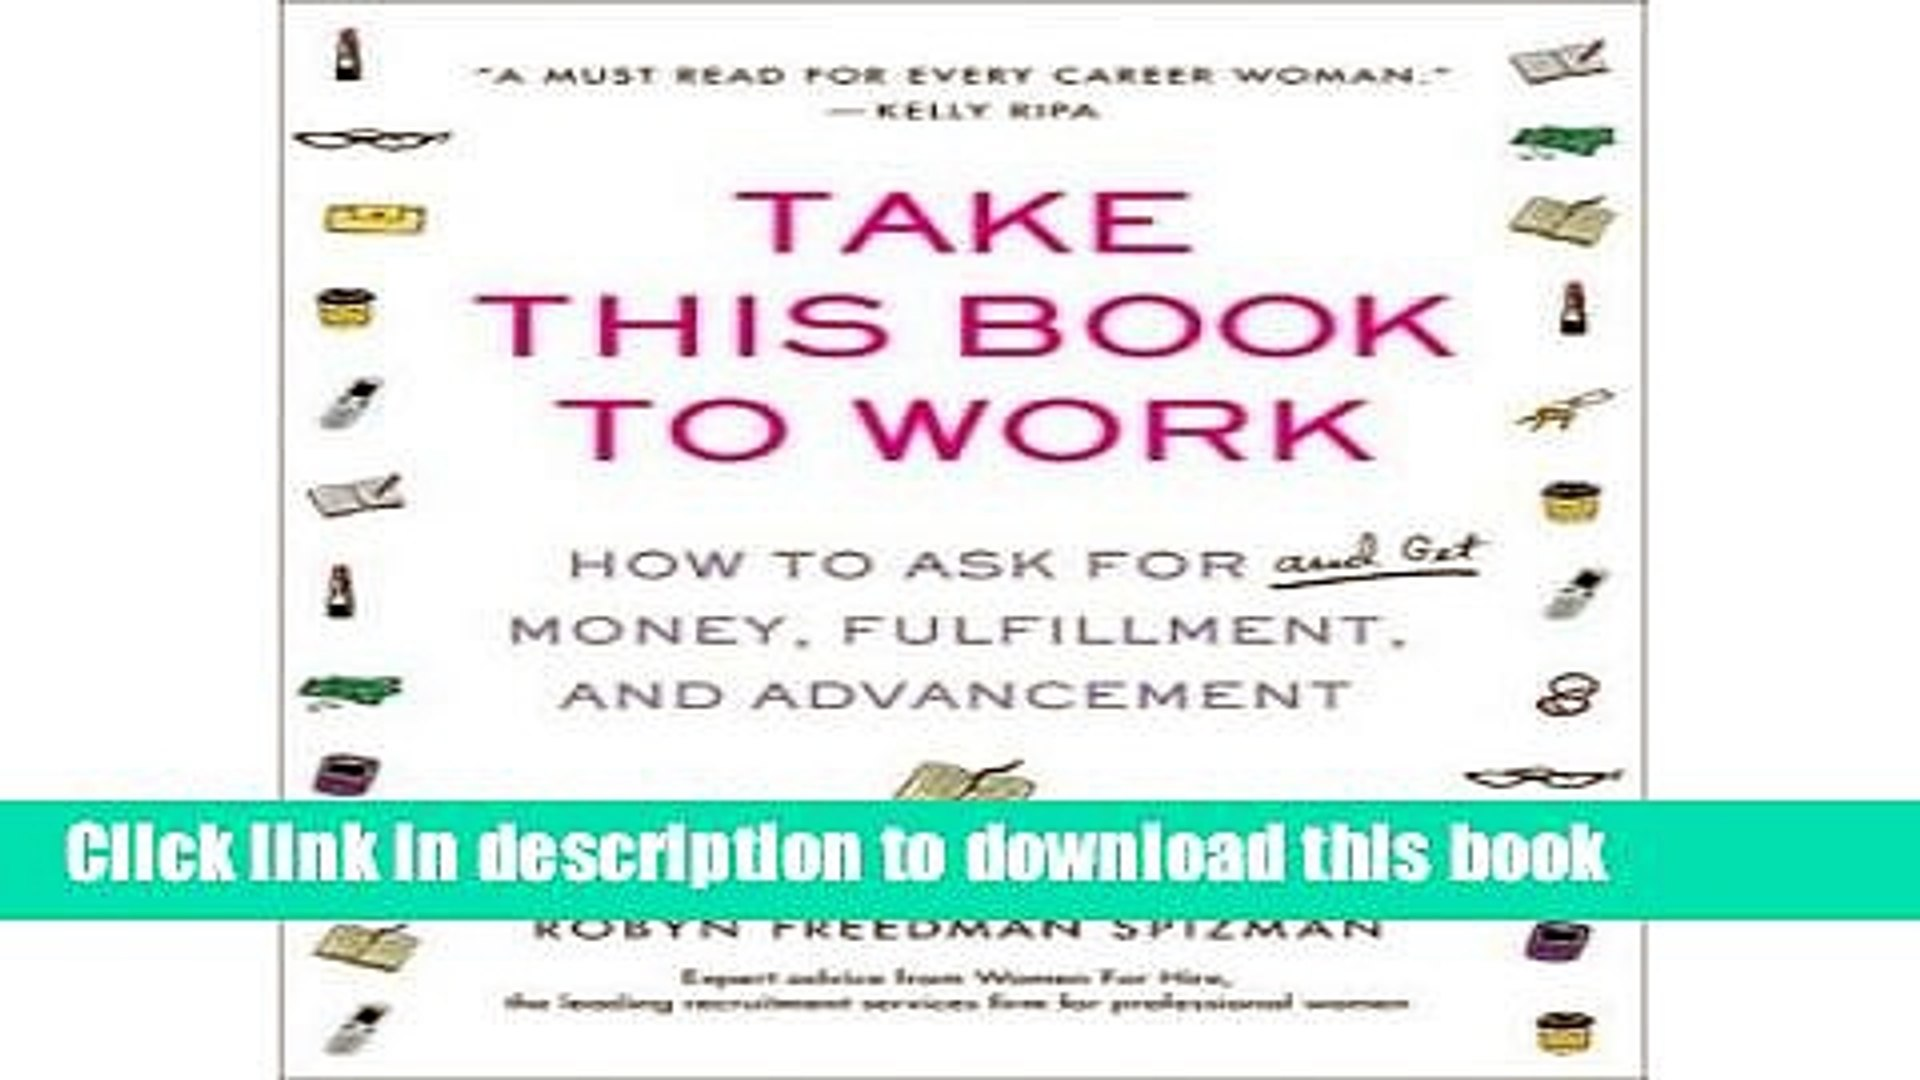 Download Take This Book to Work: How to Ask for (and Get) Money, Fulfillment, and Advancement